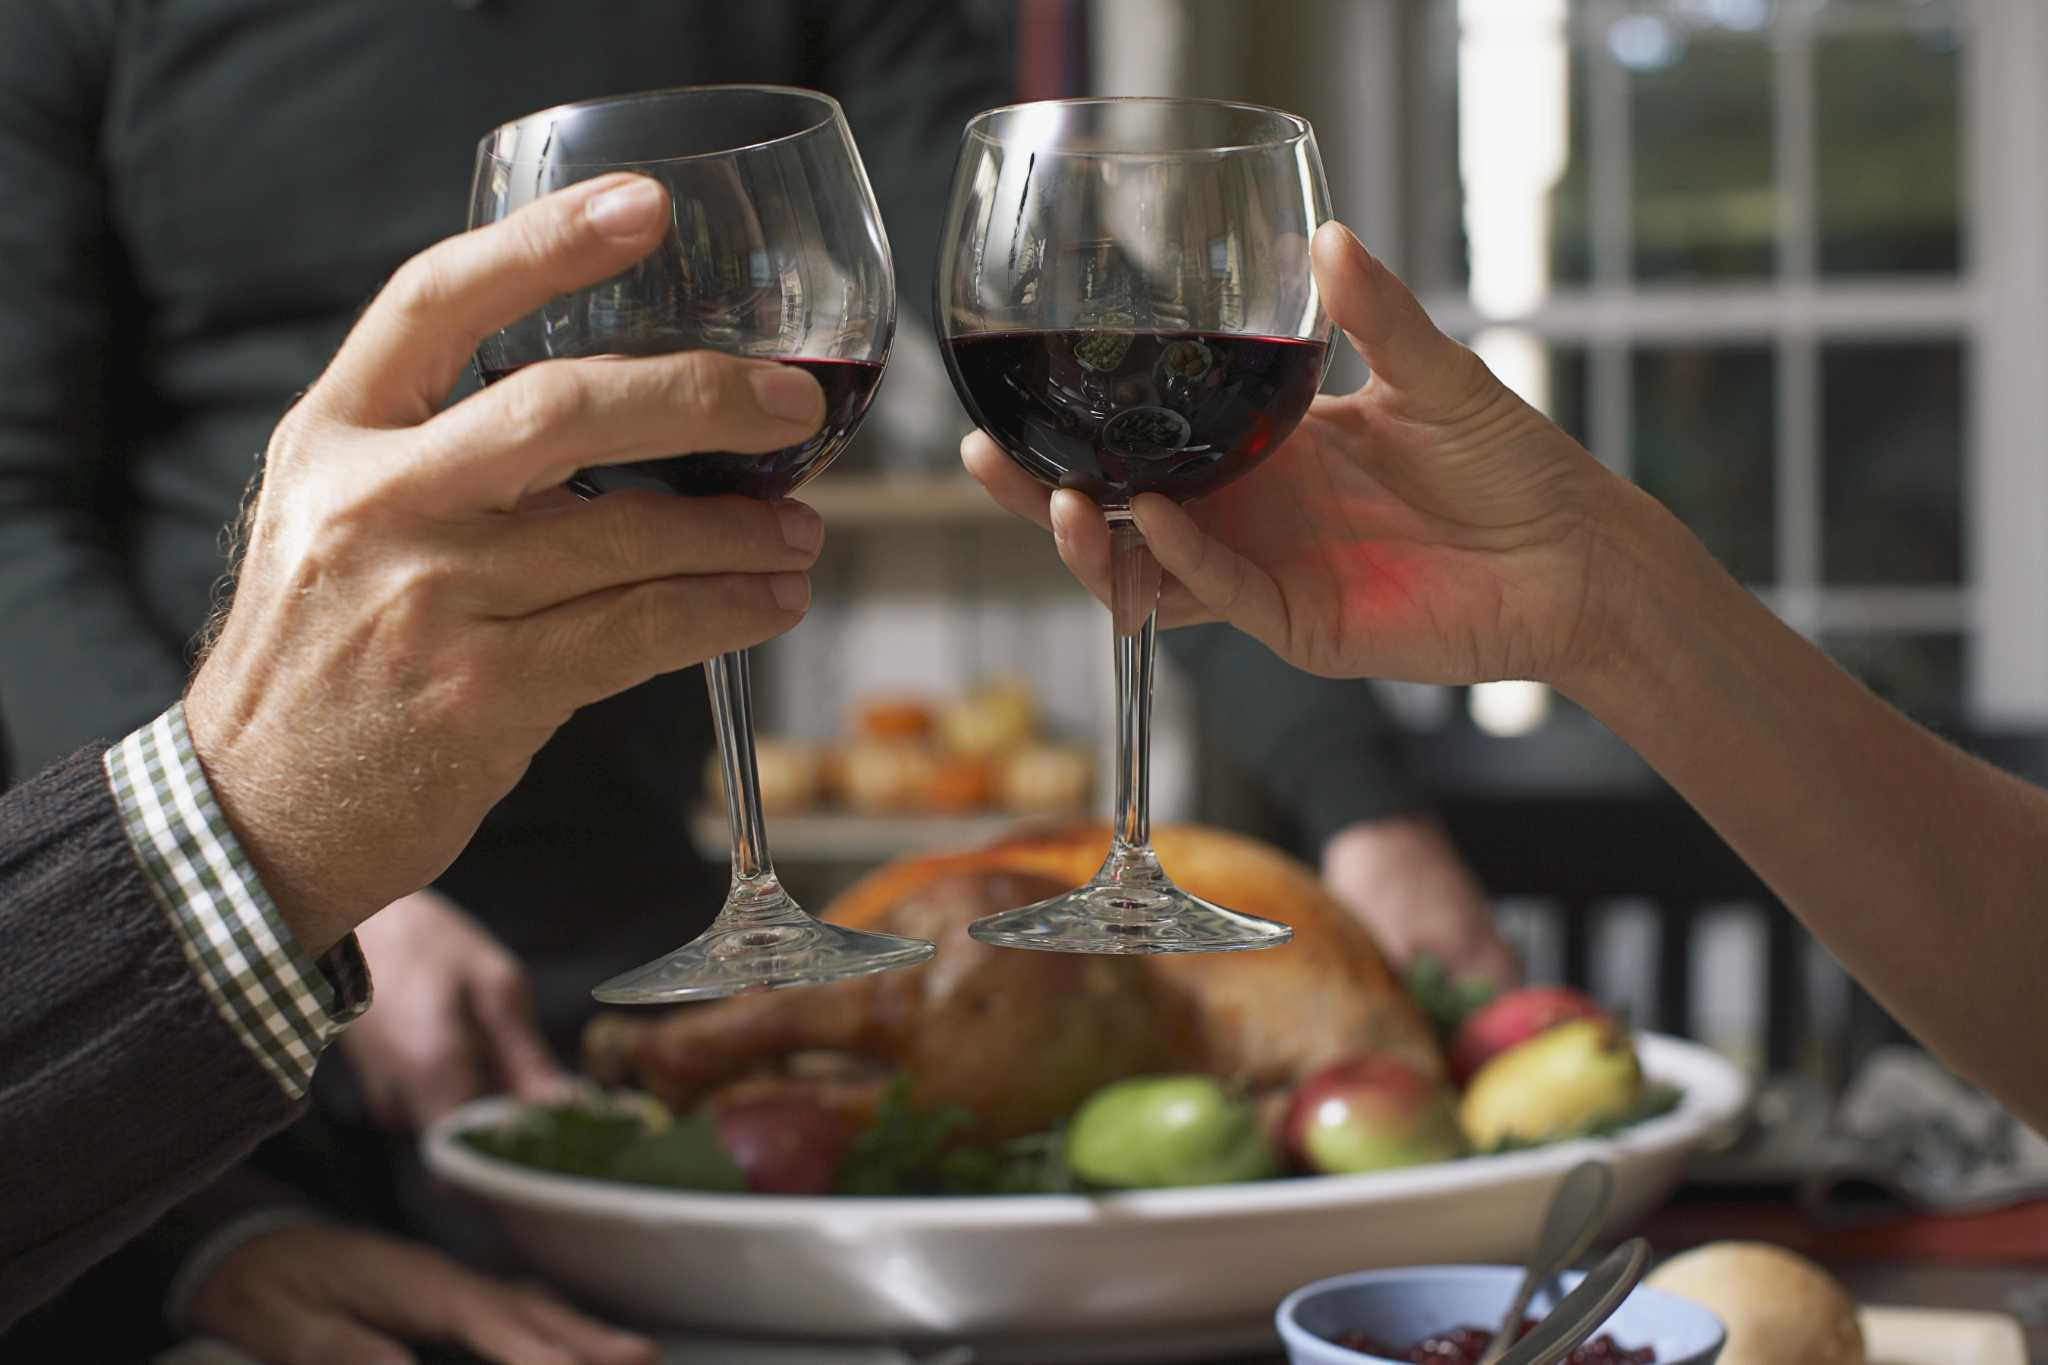 Pick these pinot noirs for your Thanksgiving table